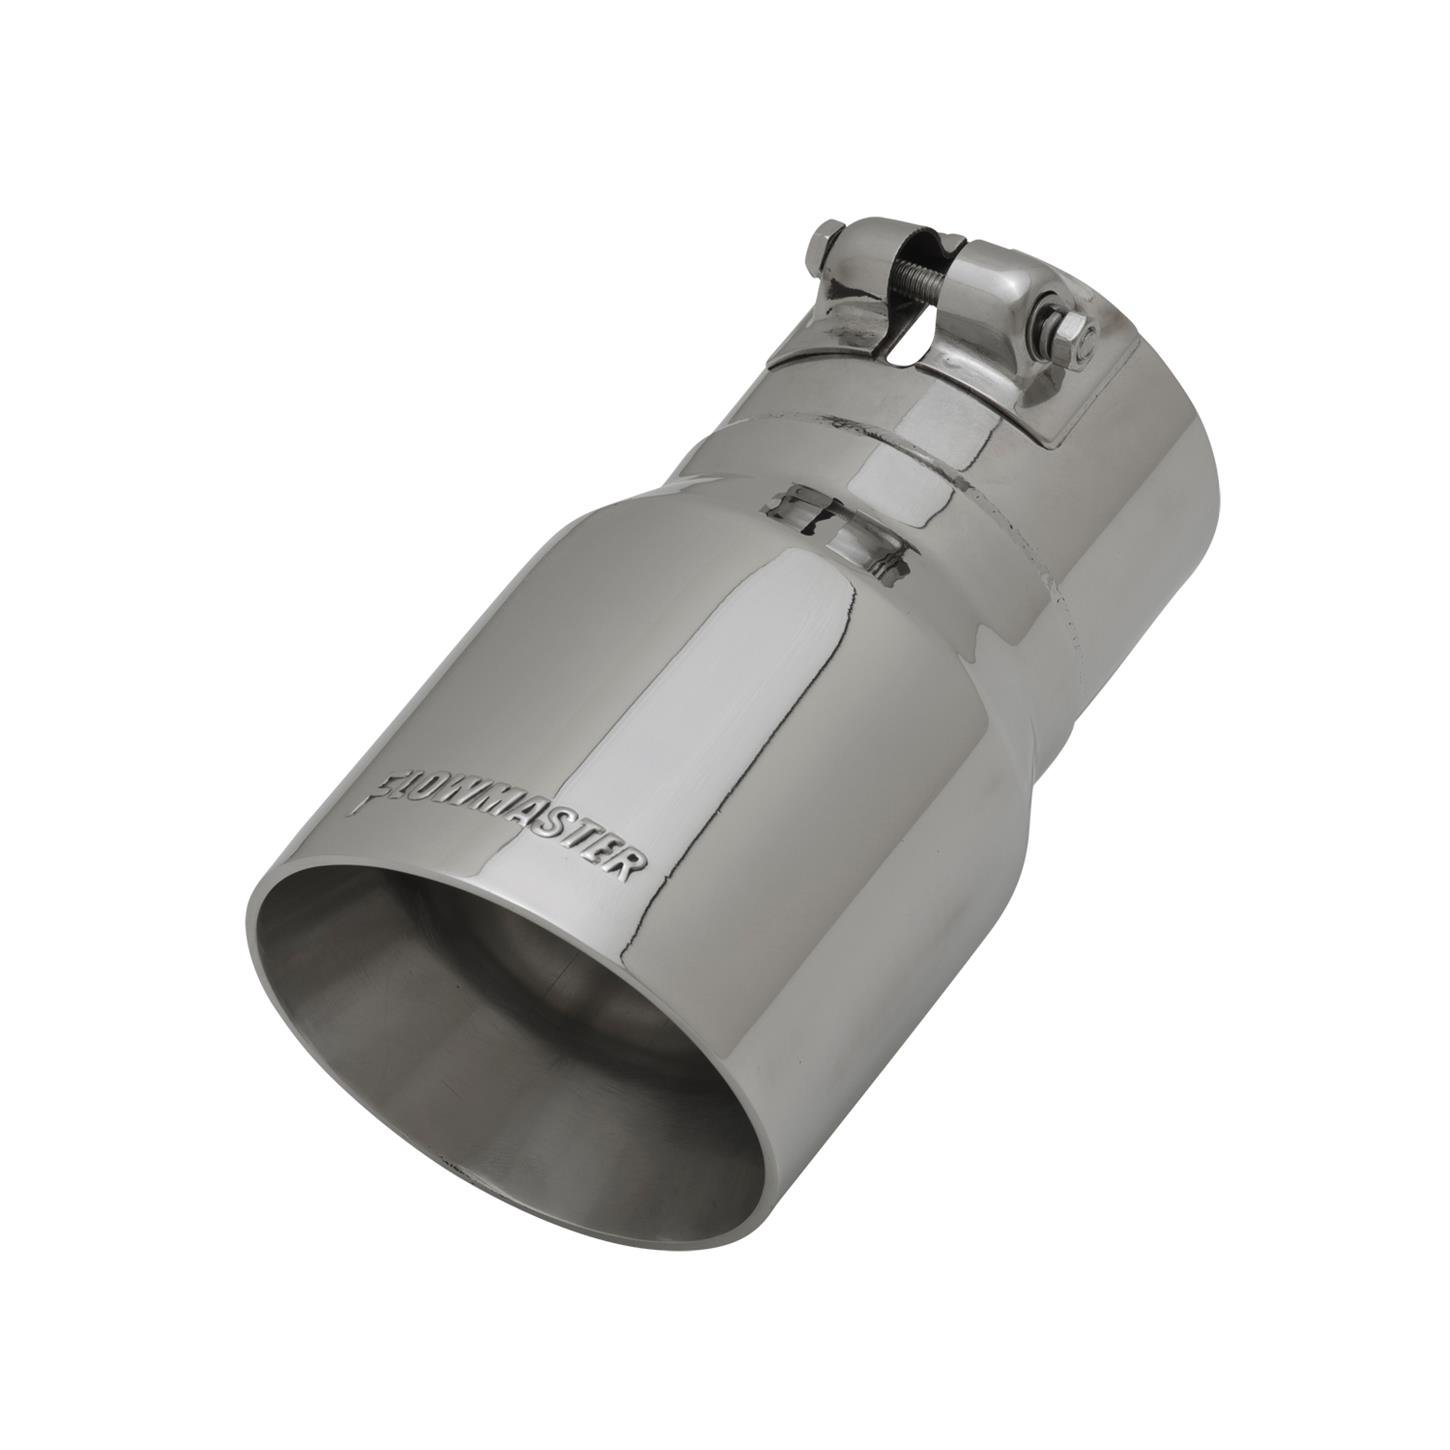 flowmaster 15377 exhaust tip 3 in inlet i d 7 in length